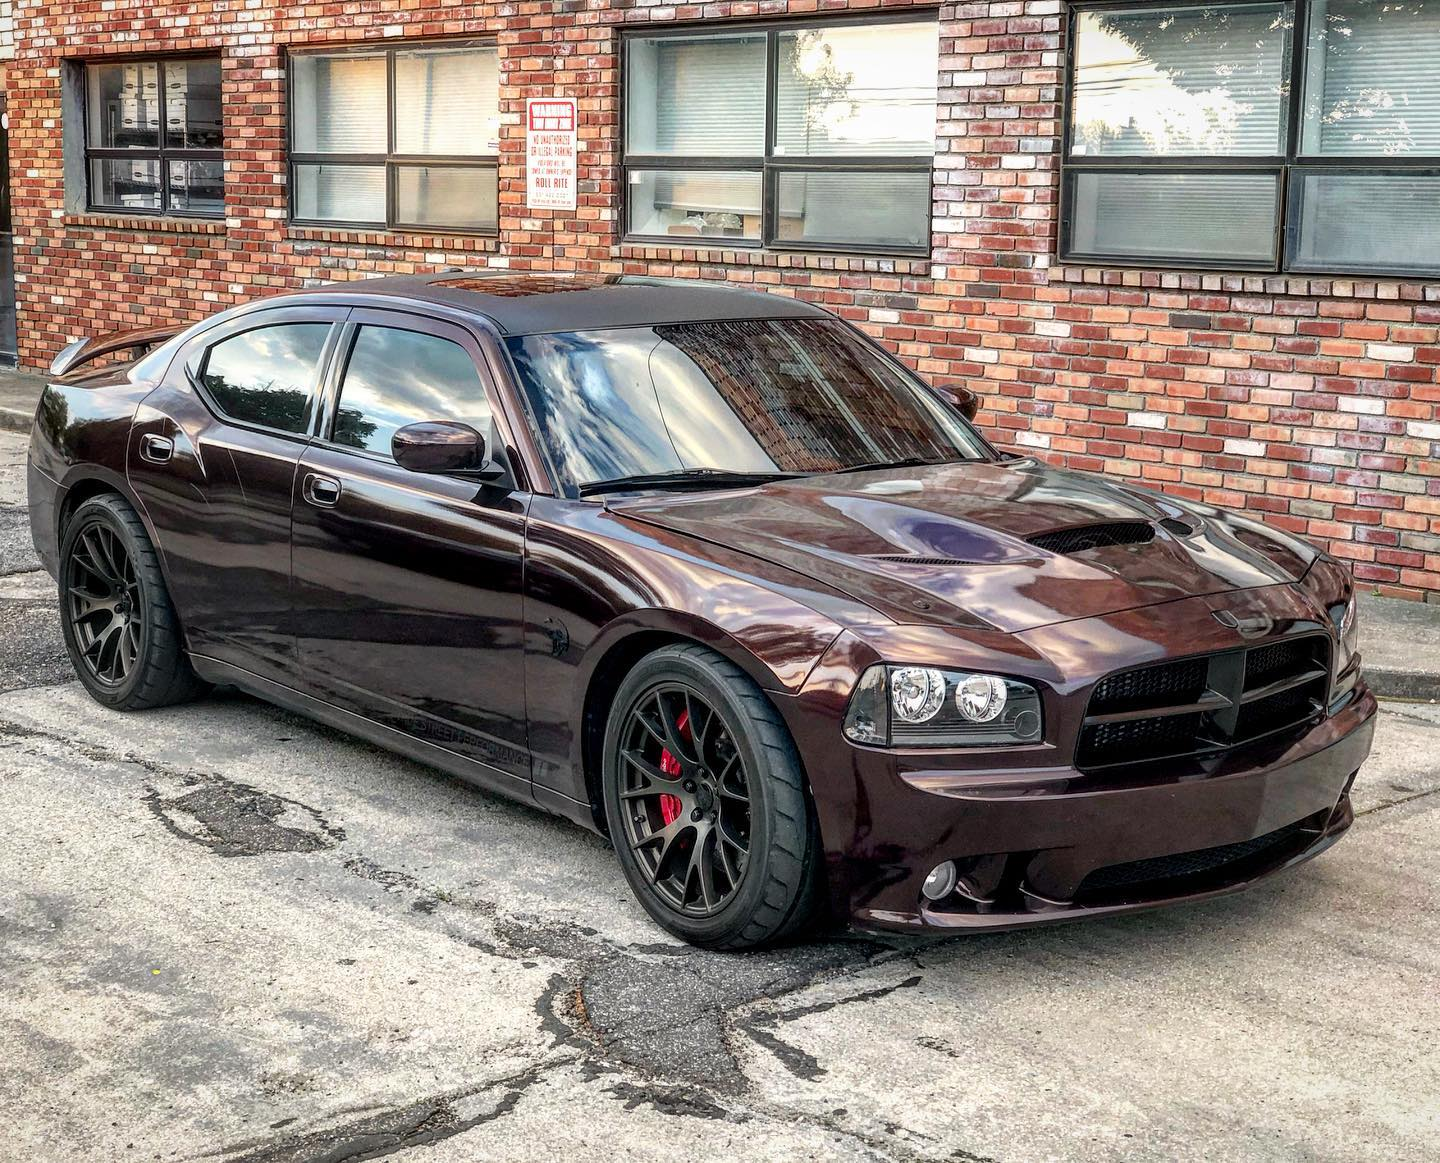 Hellcat Charger For Sale >> 2007 Charger with a Hellcat V8 – Engine Swap Depot